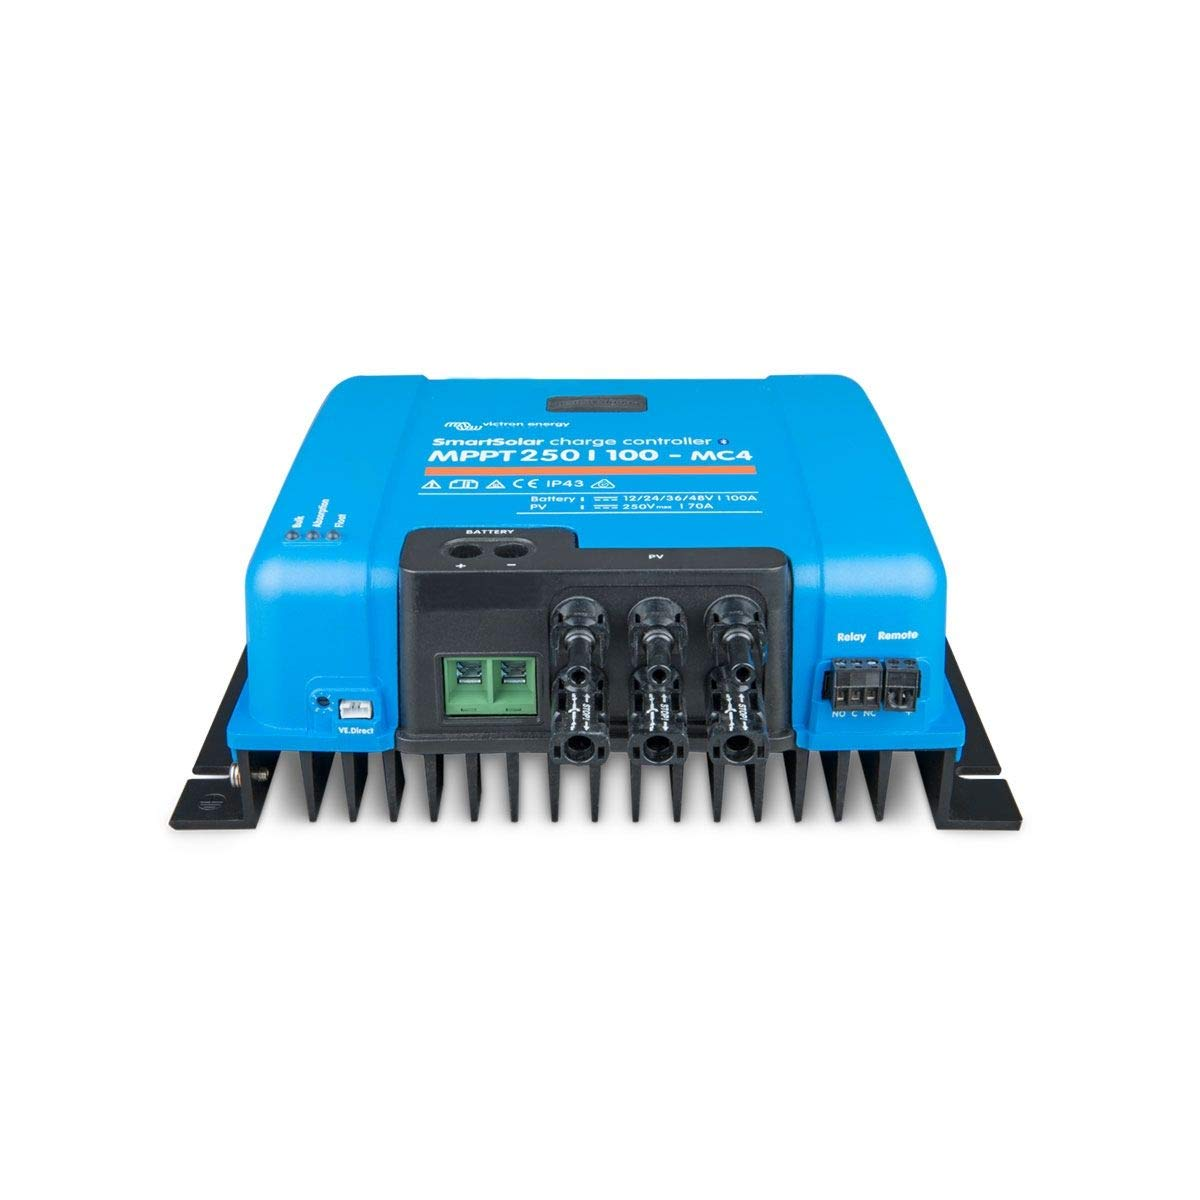 Victron SmartSolar MPPT 250//100 MC4 Solar Charge Controller 250V 100A with Bluetooth